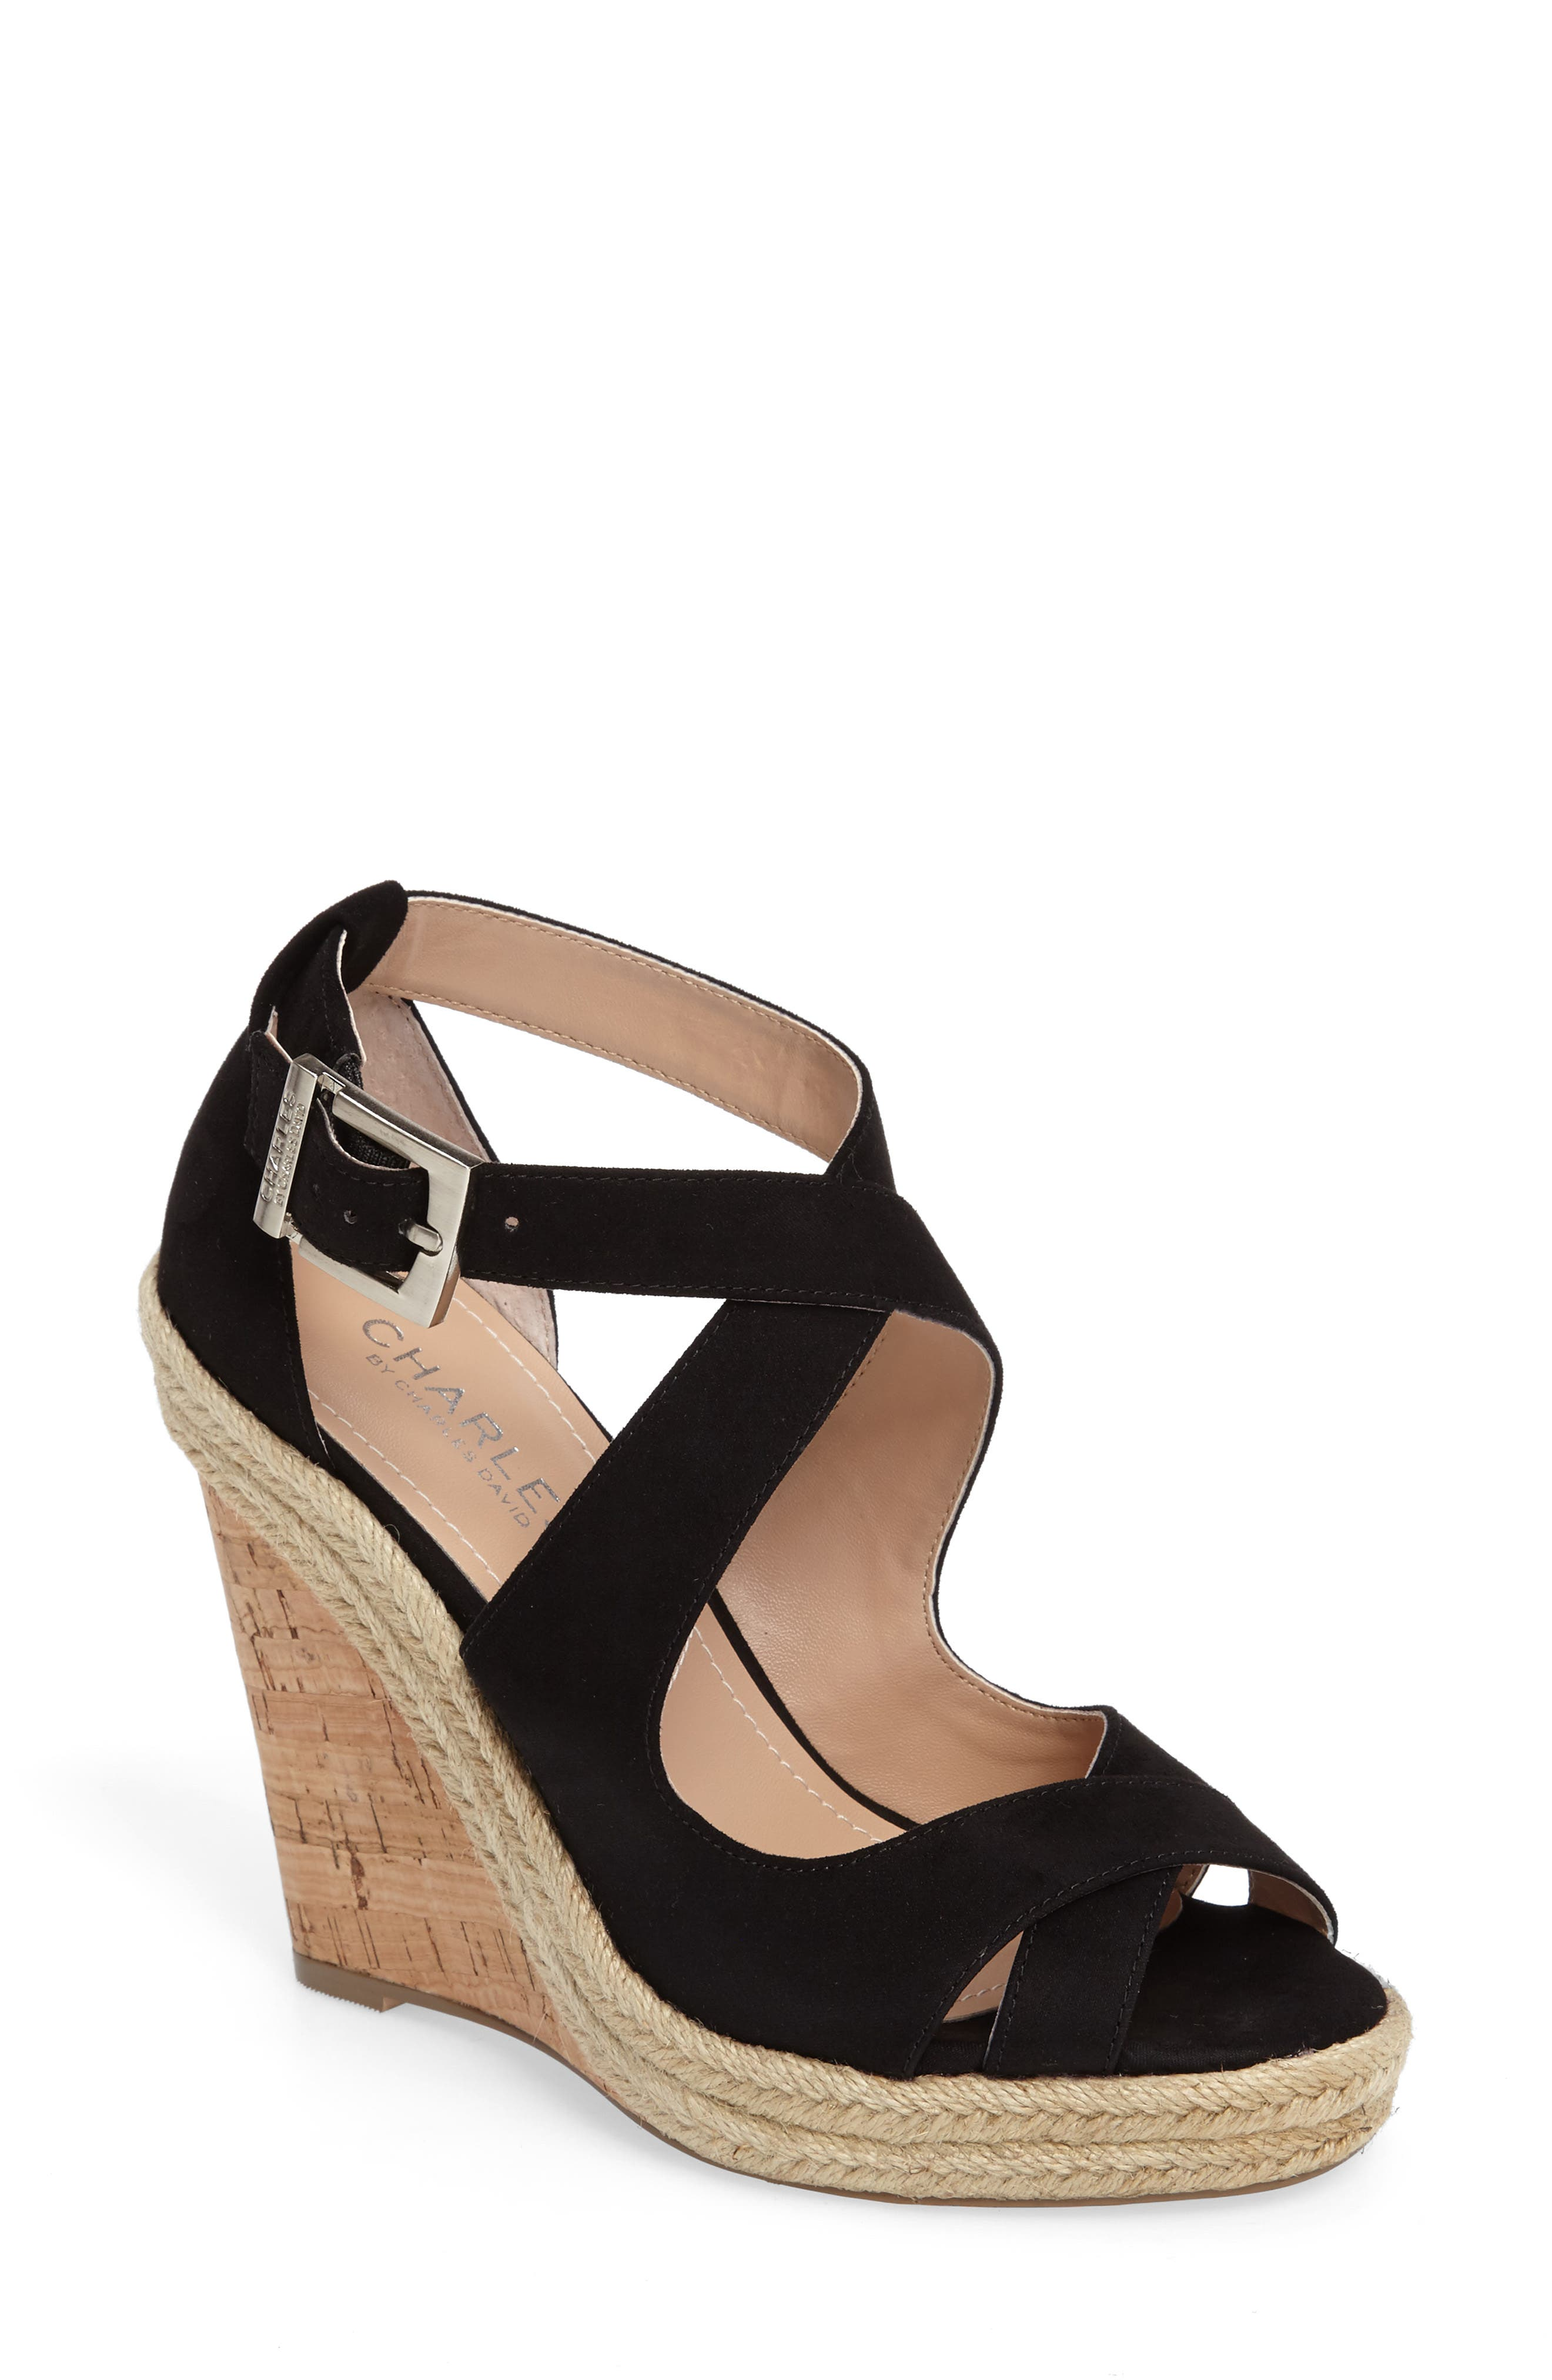 Belfast Strappy Wedge Sandal,                         Main,                         color, 001